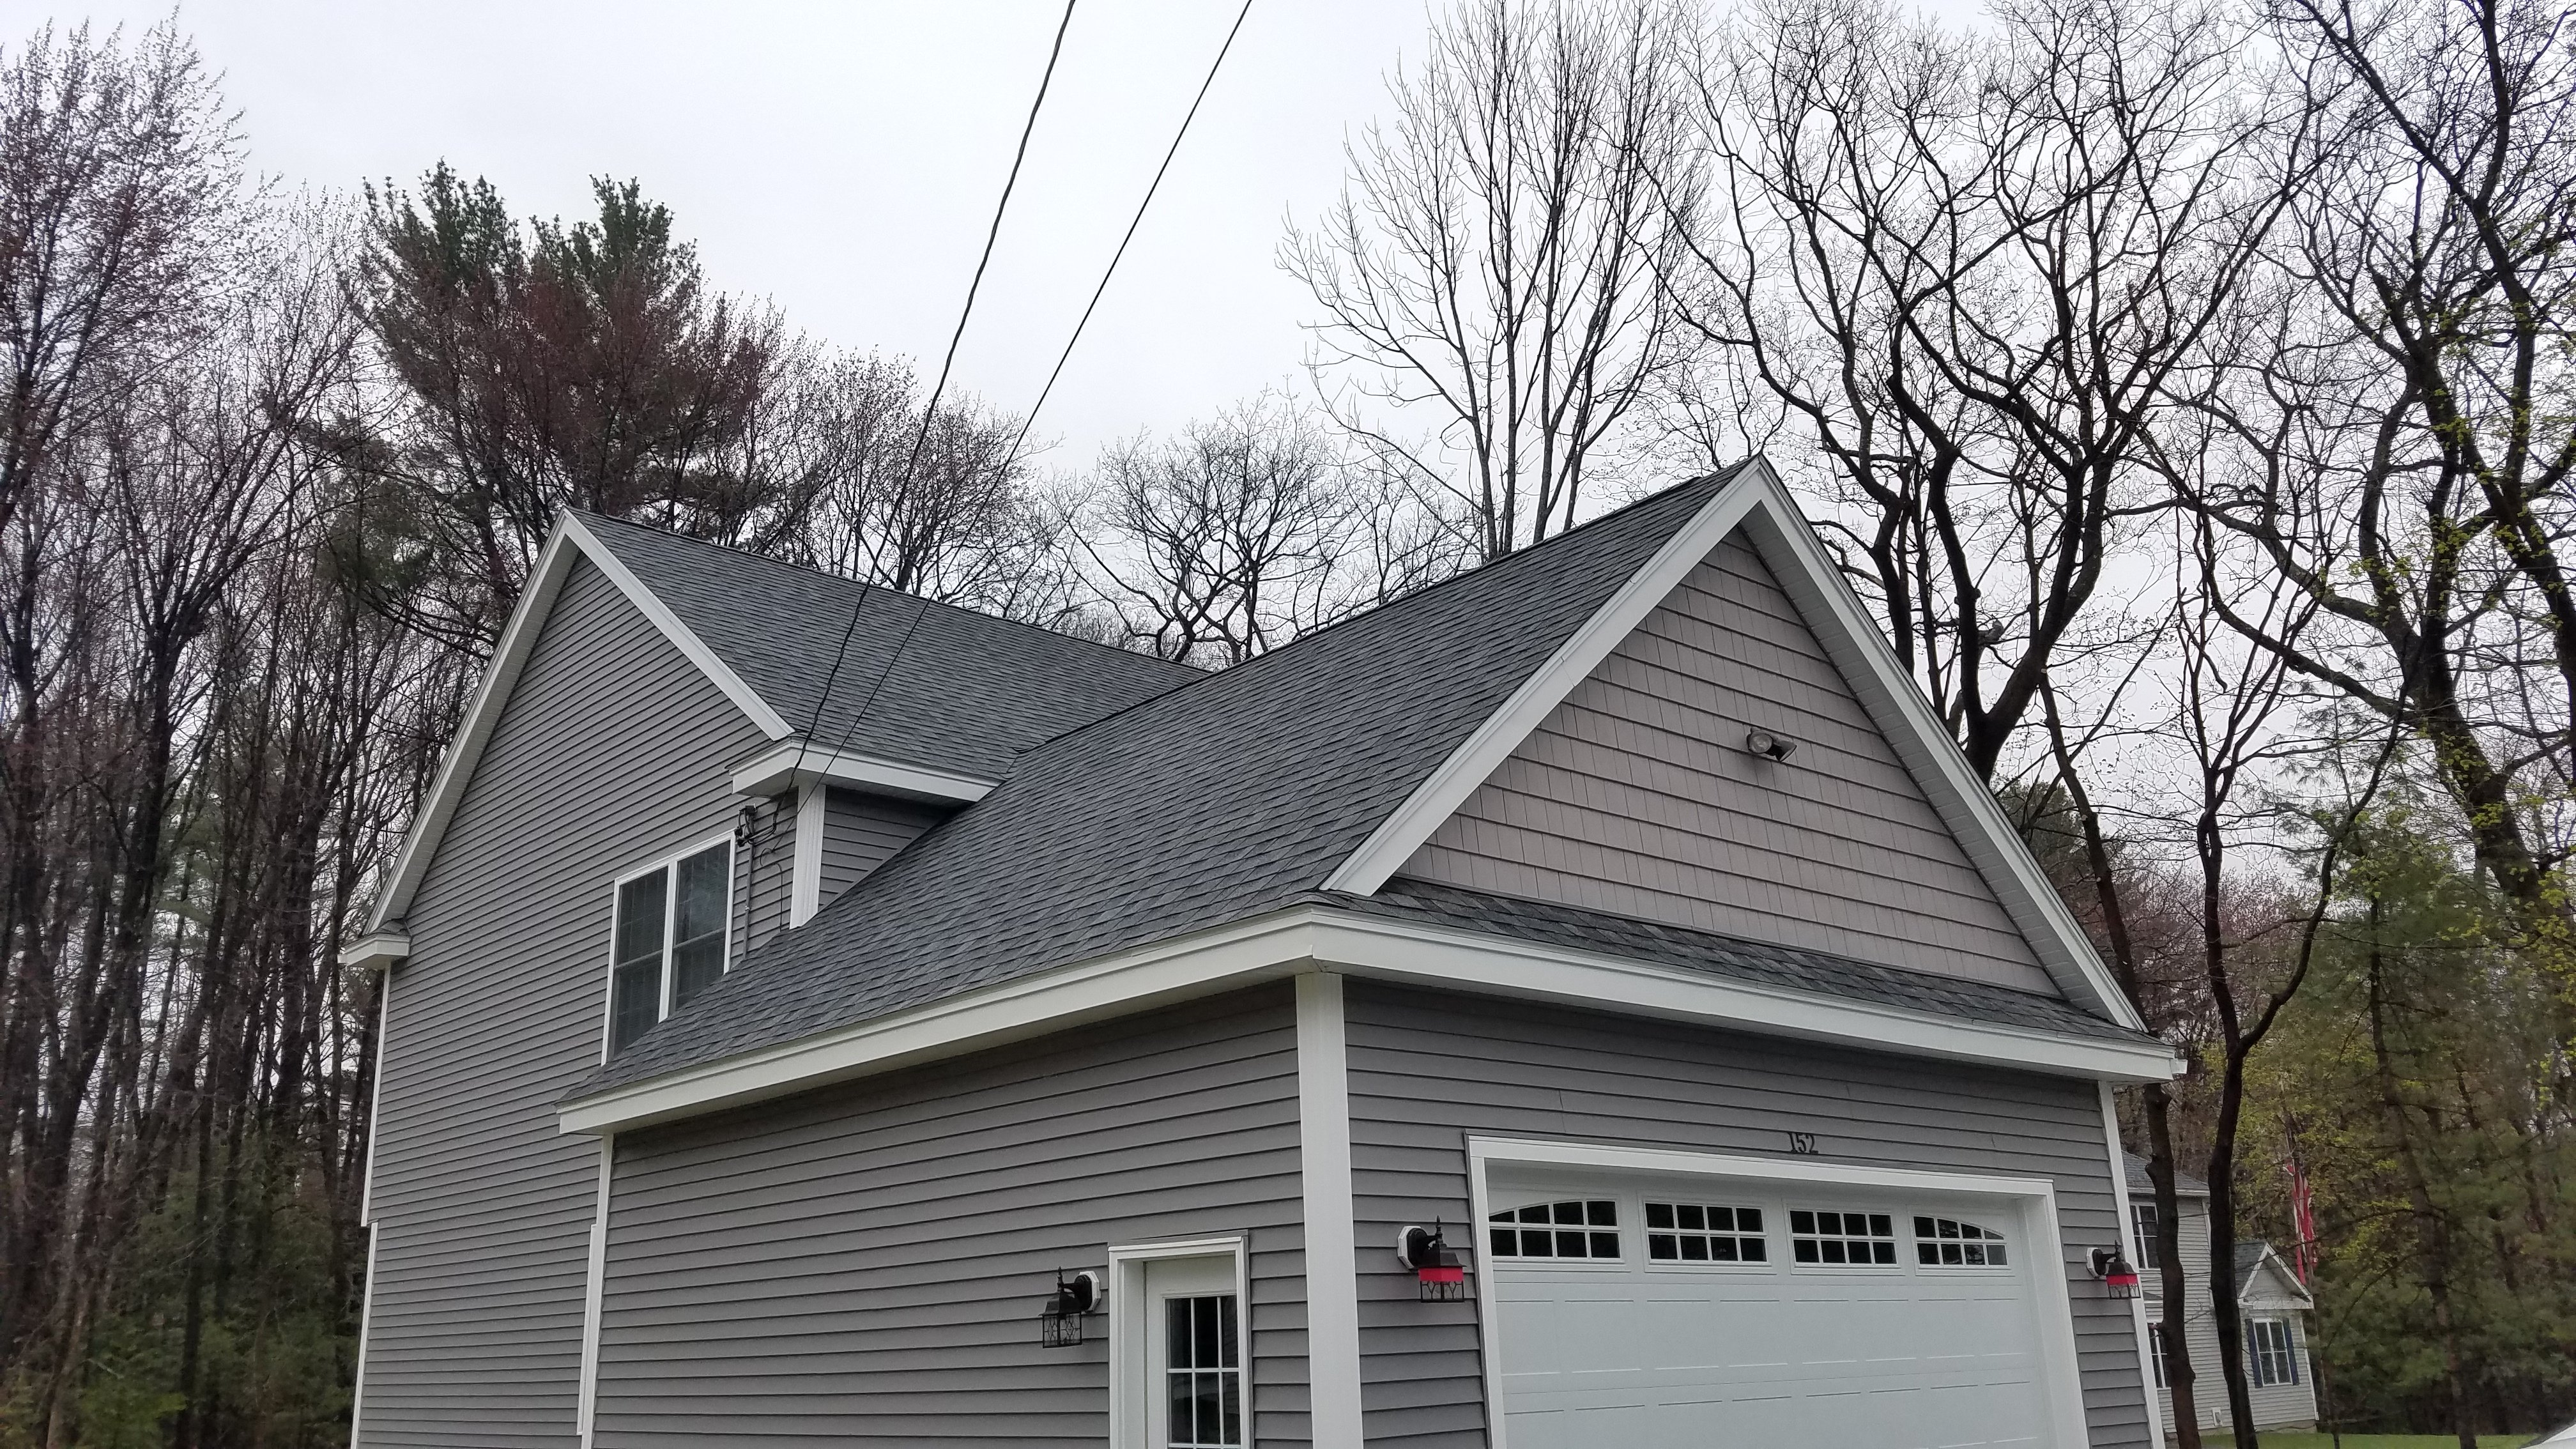 Residential Roof by ASAP Roofing NH   152 Arah St, Manchester NH